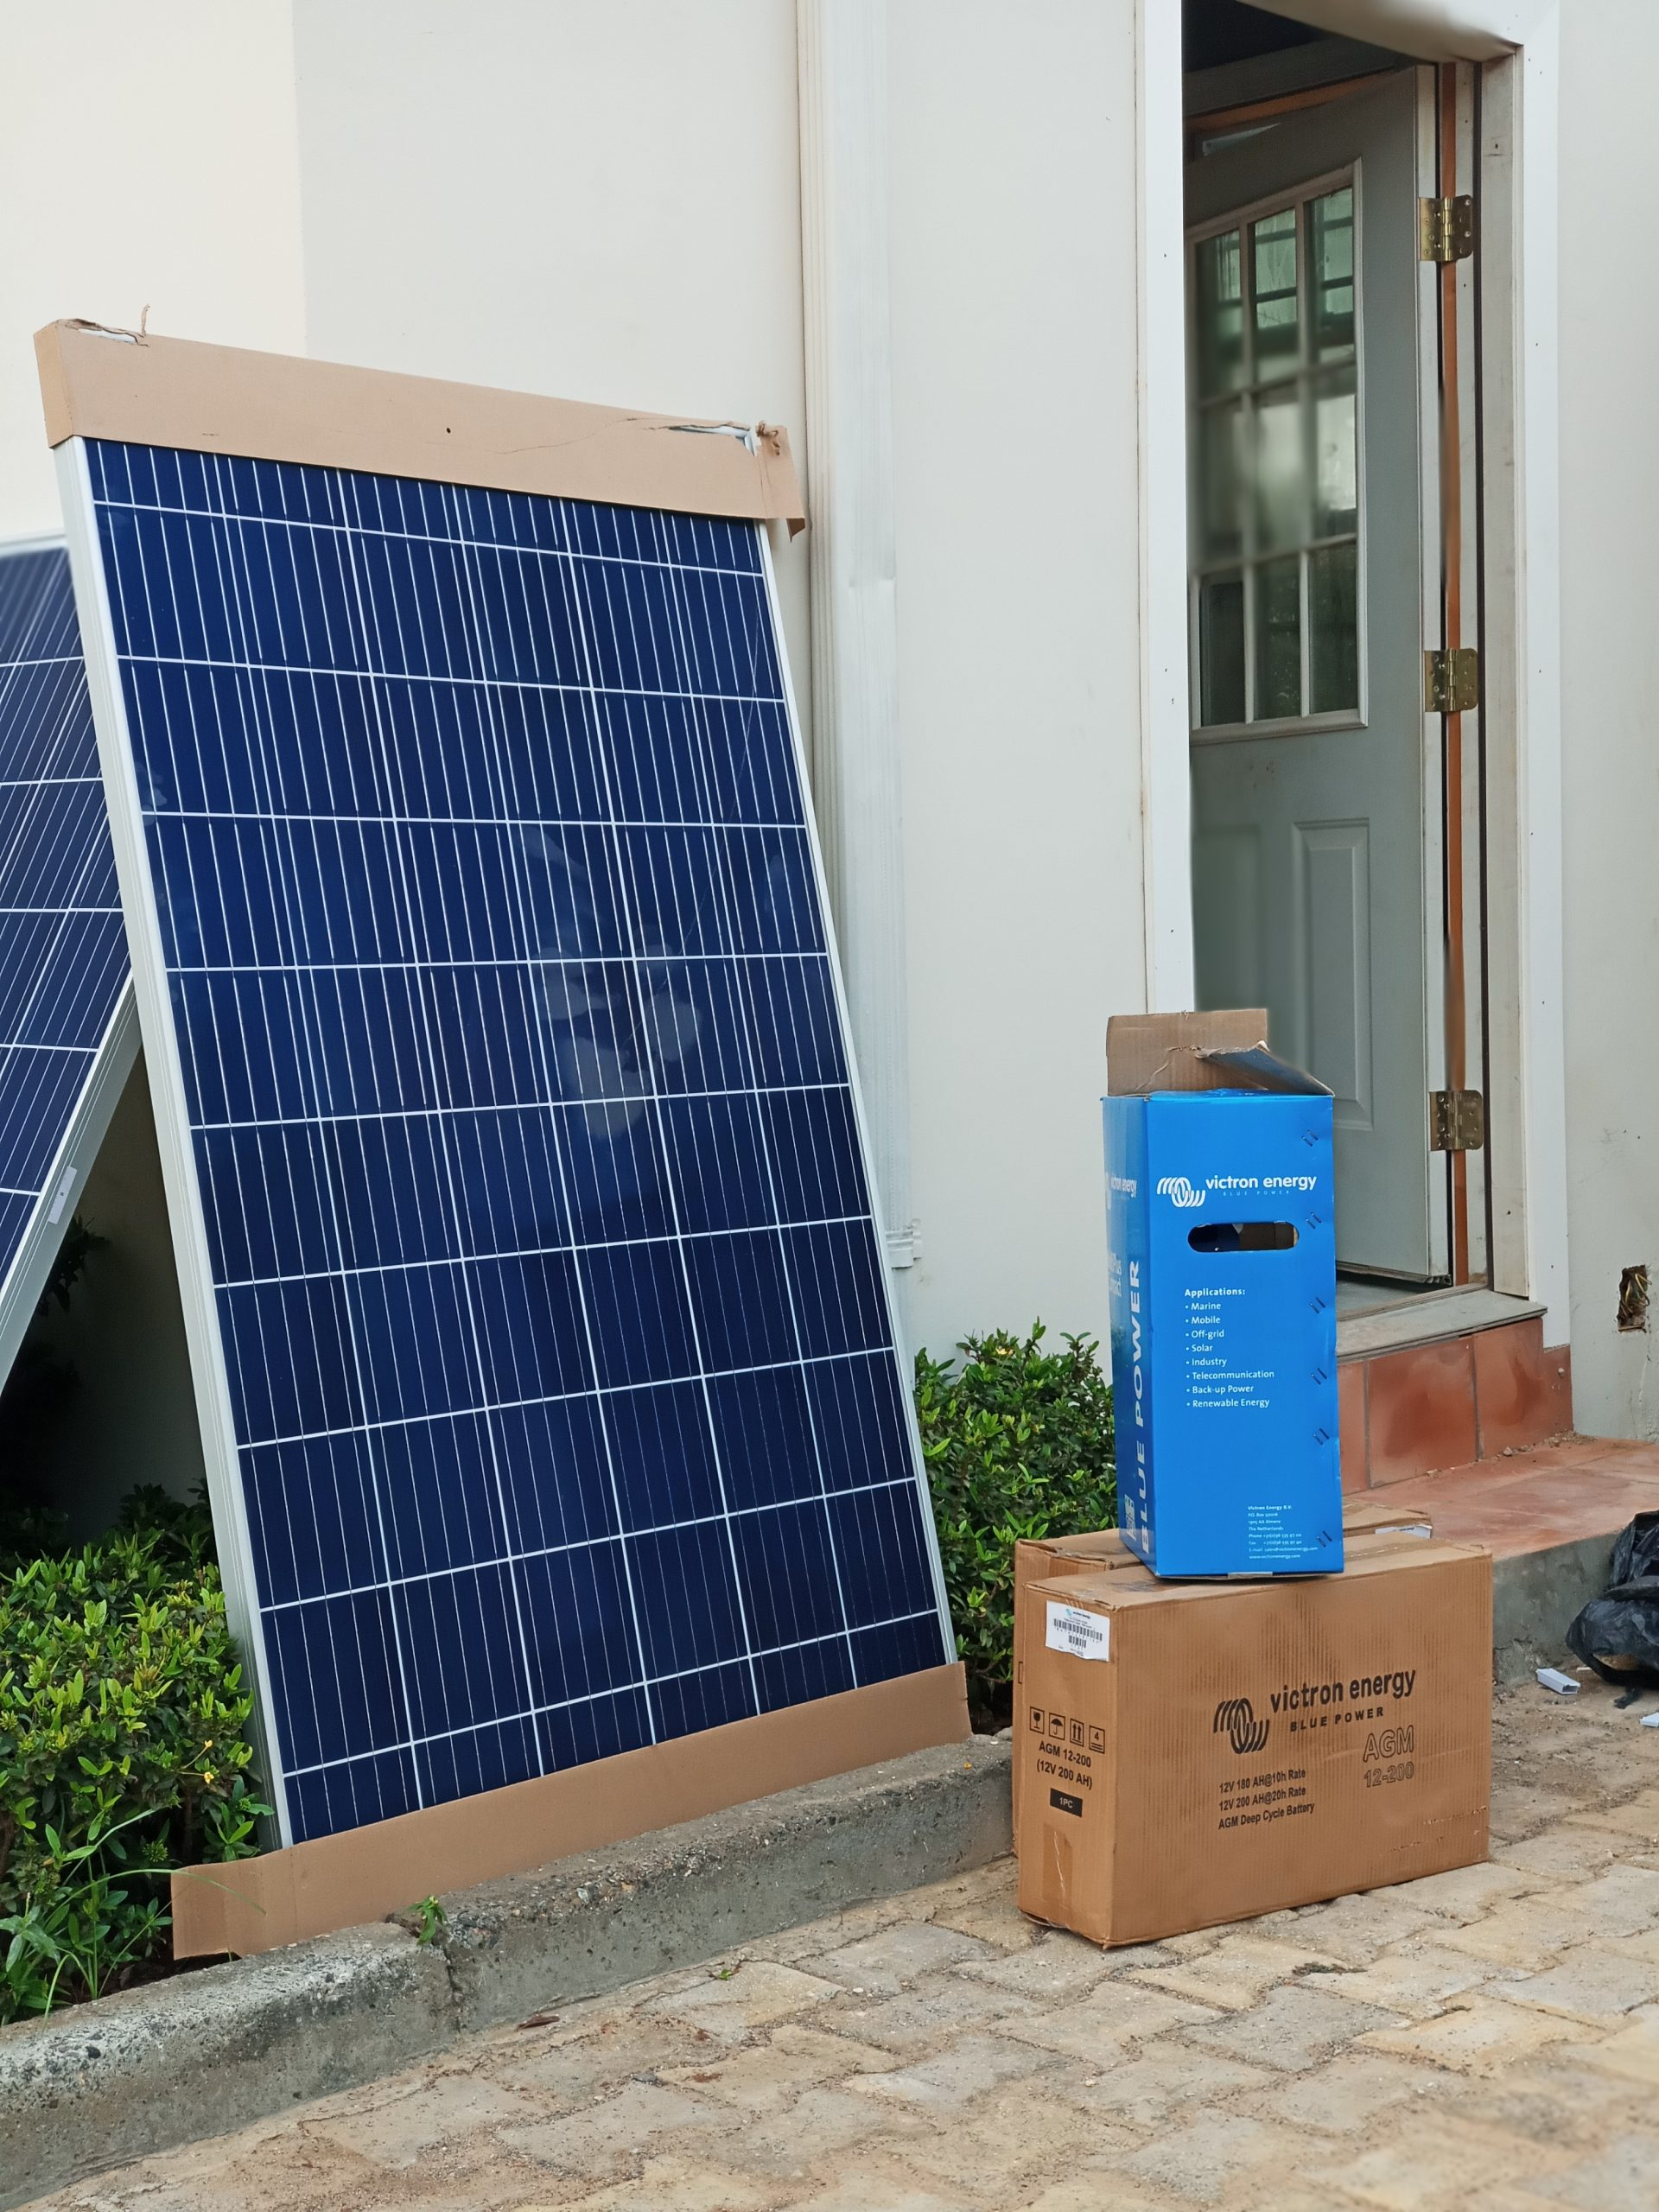 Solar Power as a Work-From-Home Perks?